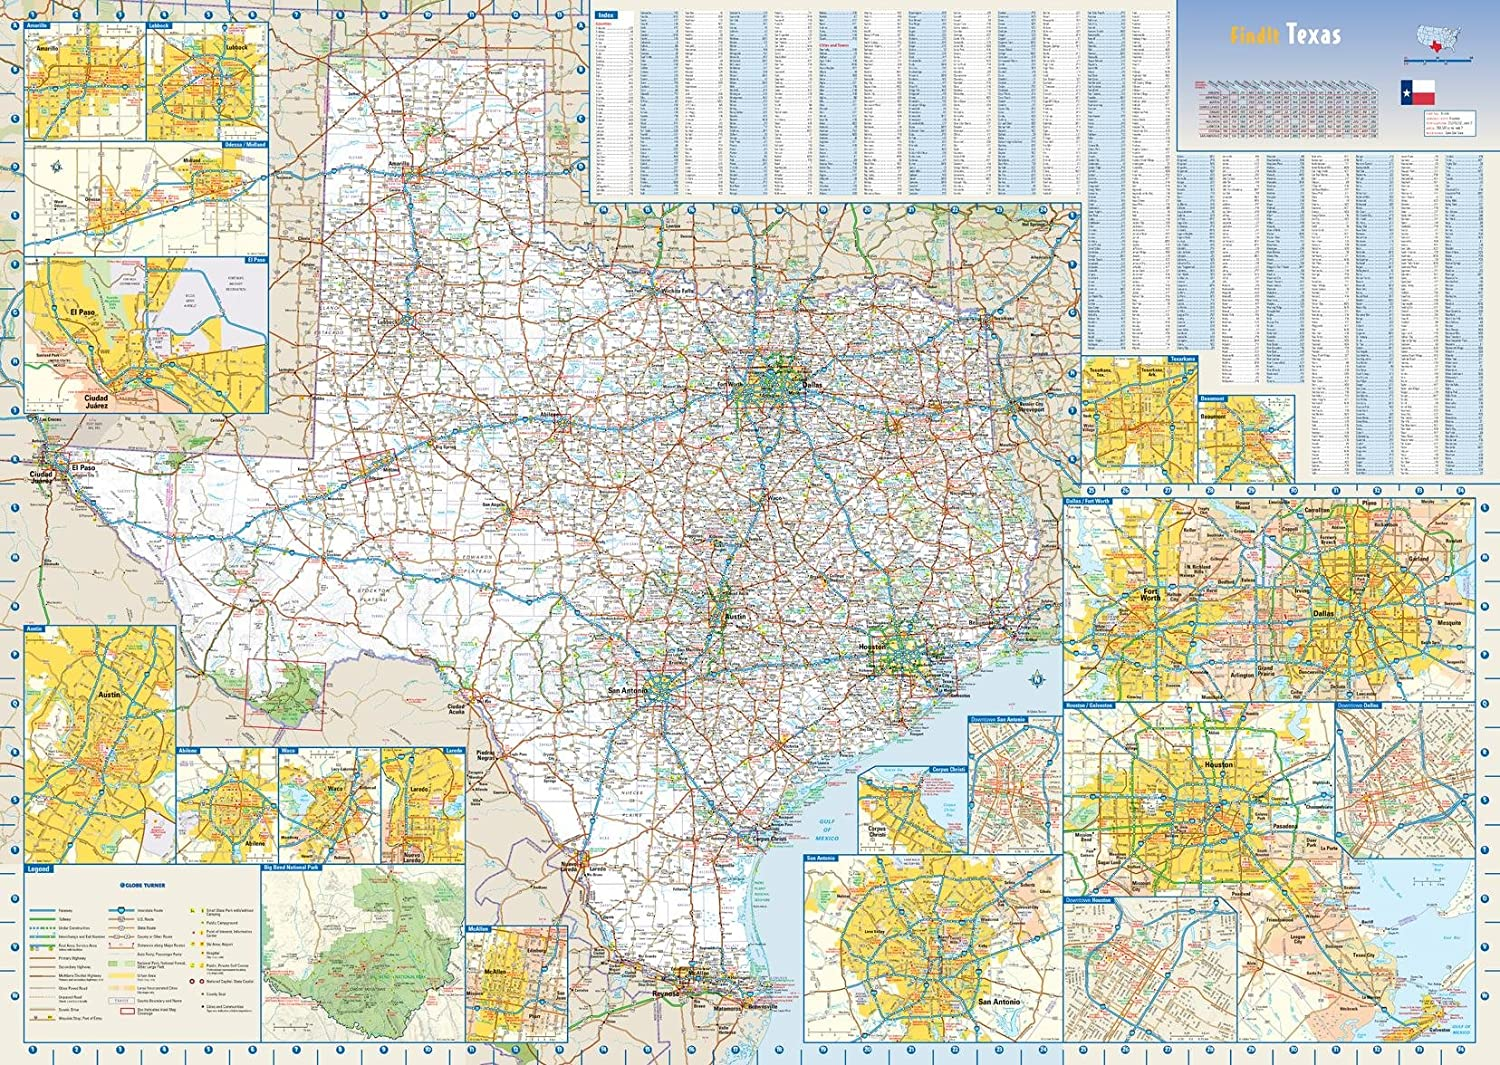 The Map Of Texas State.Amazon Com Texas State Wall Map 34 5 X 24 75 Paper Office